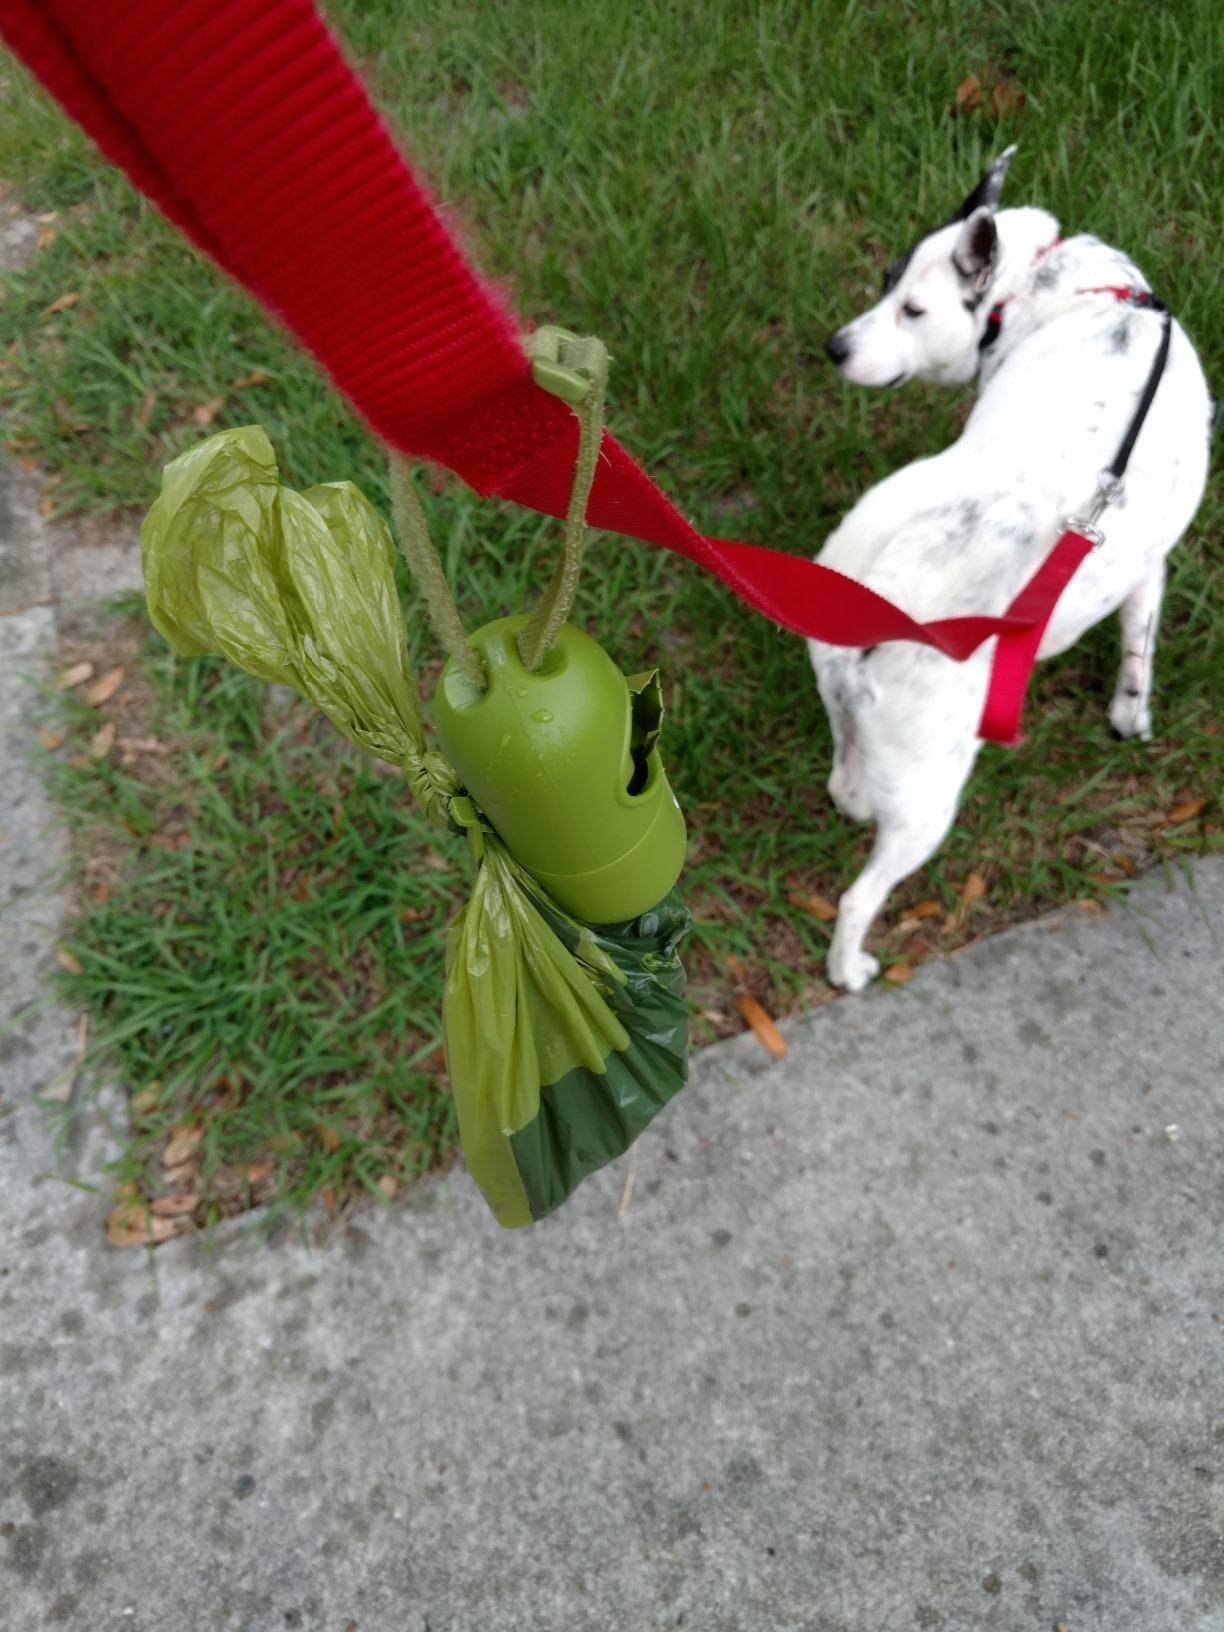 the poop bag attached to a leash with a white dog in the background